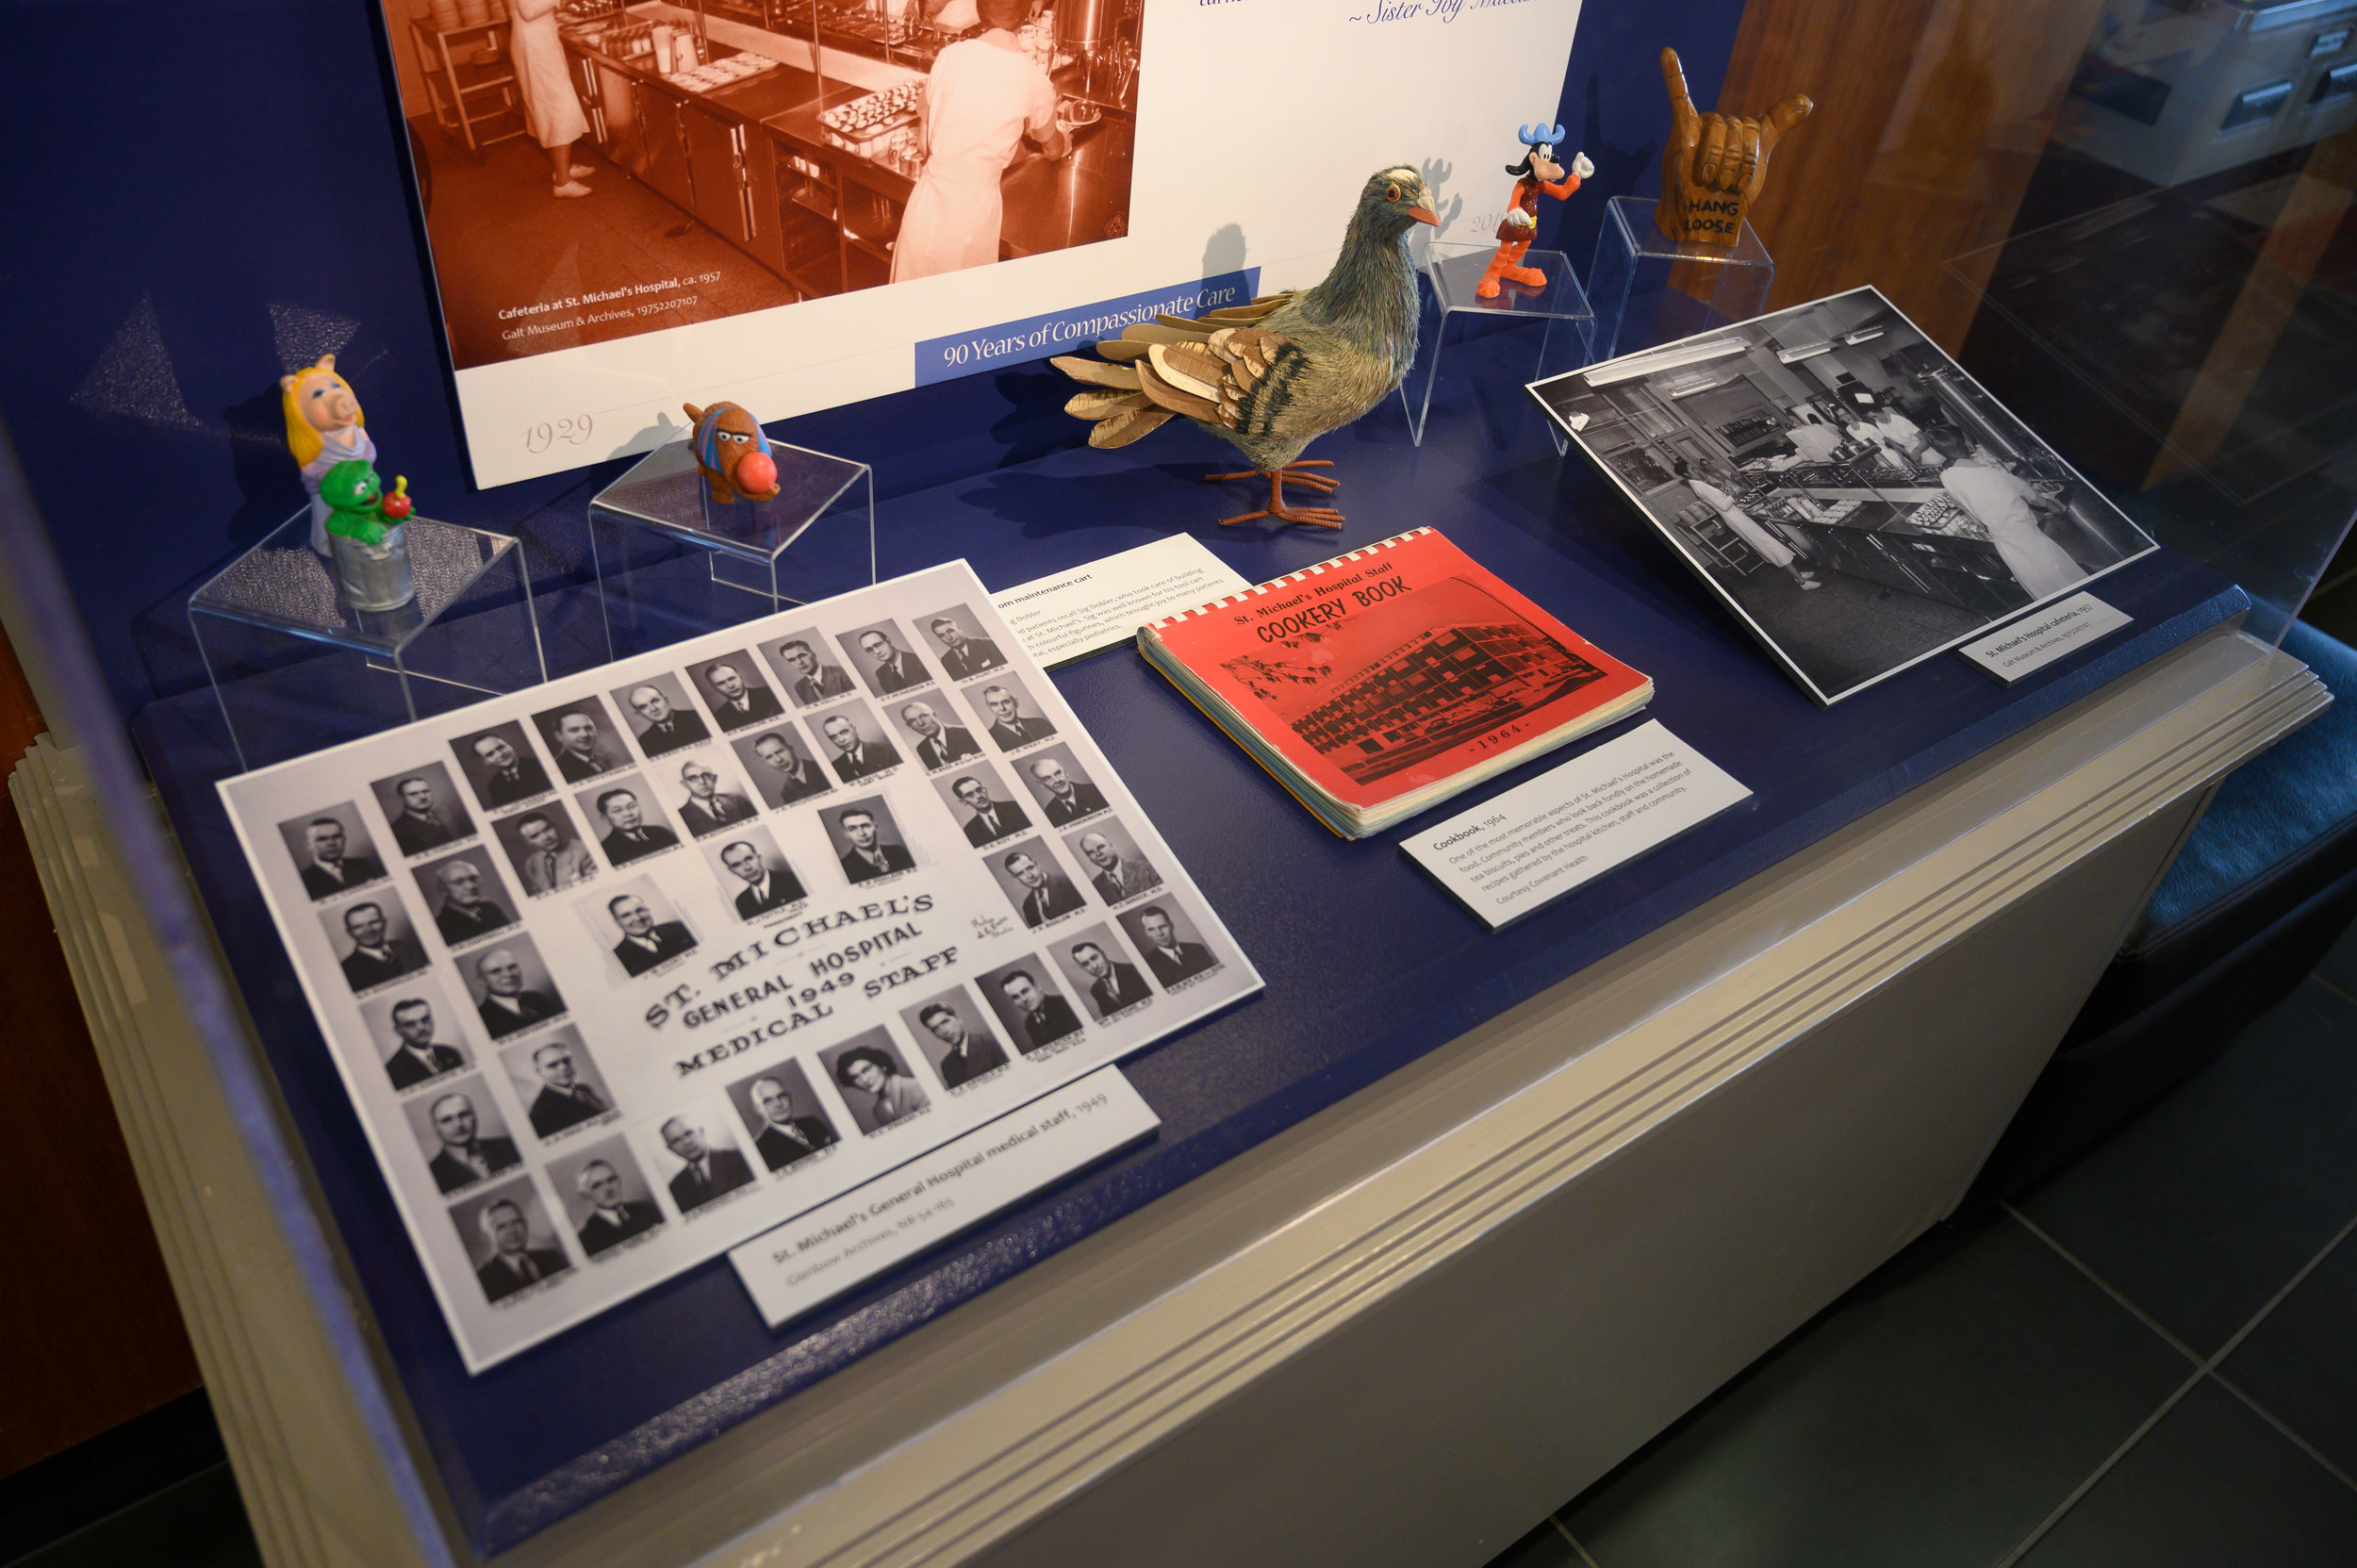 Materials featured in the St. Michael's exhibit at the Galt Museum & Archives